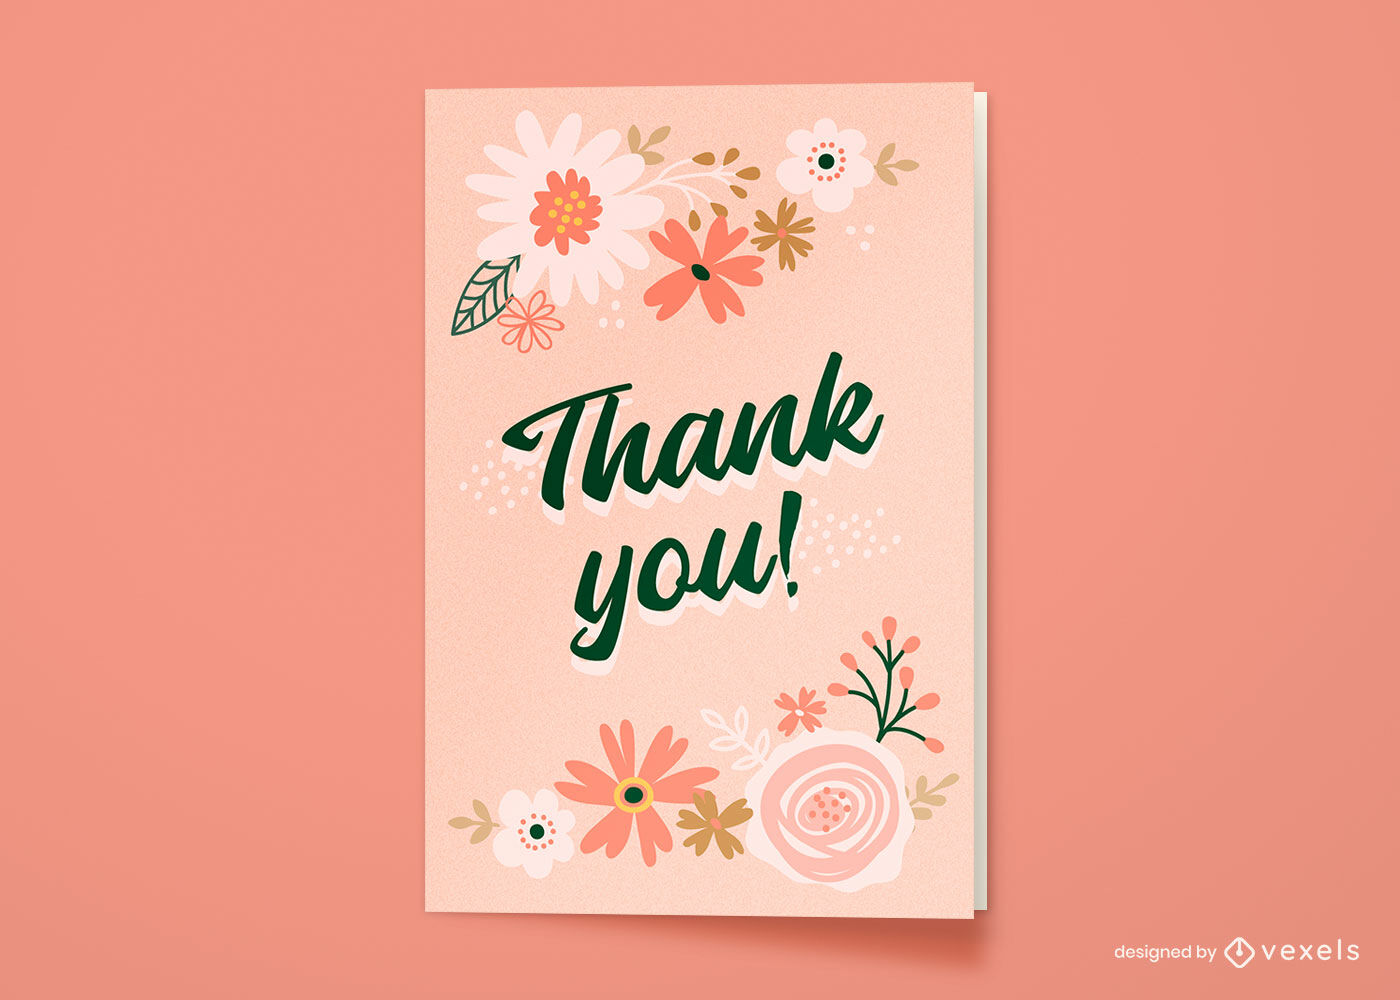 Thank you floral nature greeting card